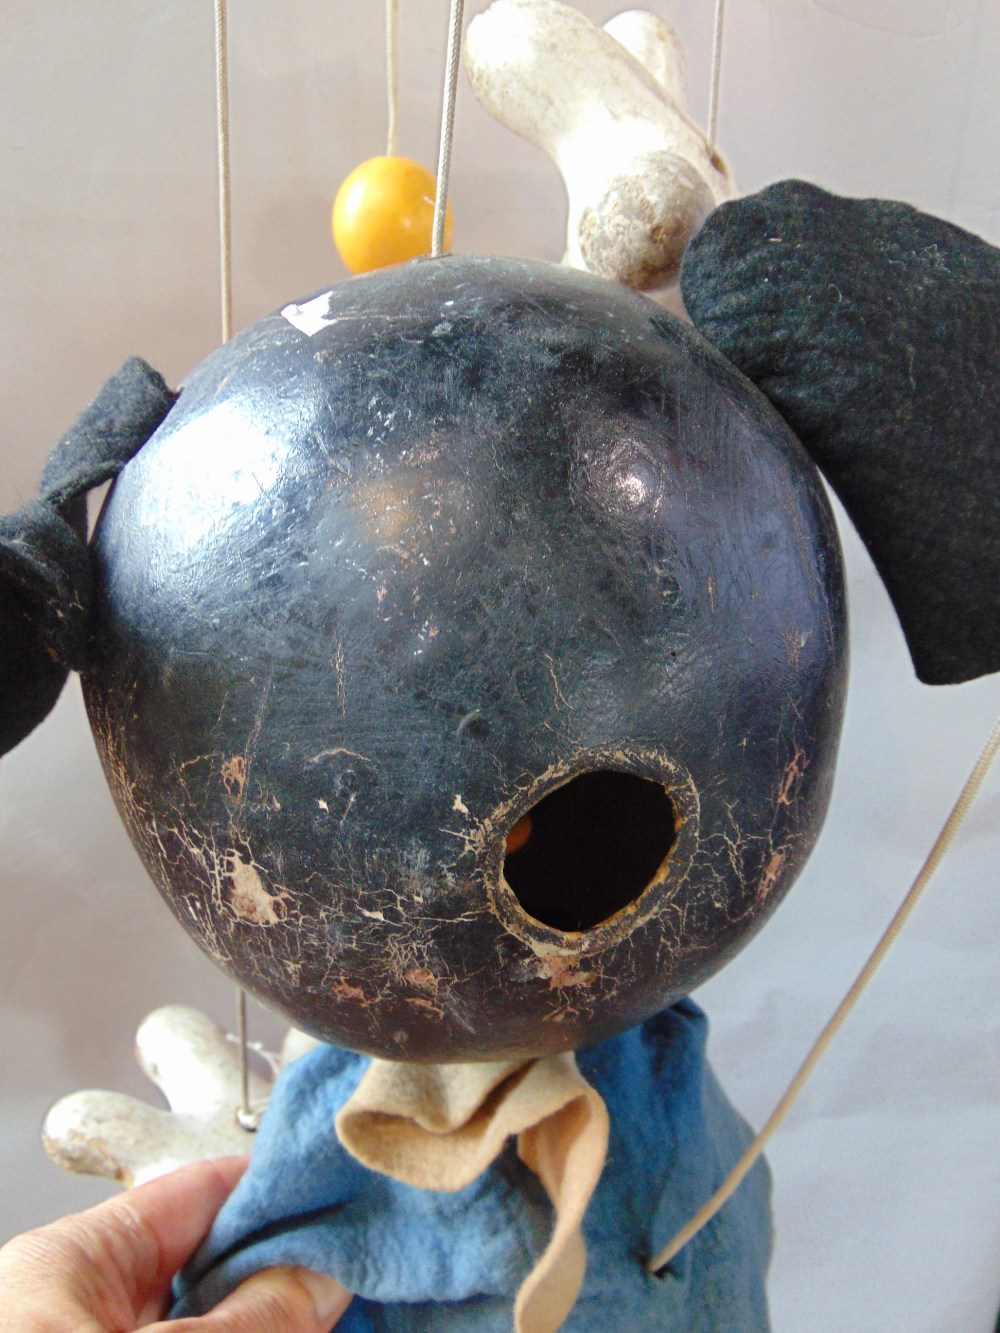 Lot 86 - A large 1950's shop display Mickey Mouse Pelham puppet, wood construction with felt ears, jacket and